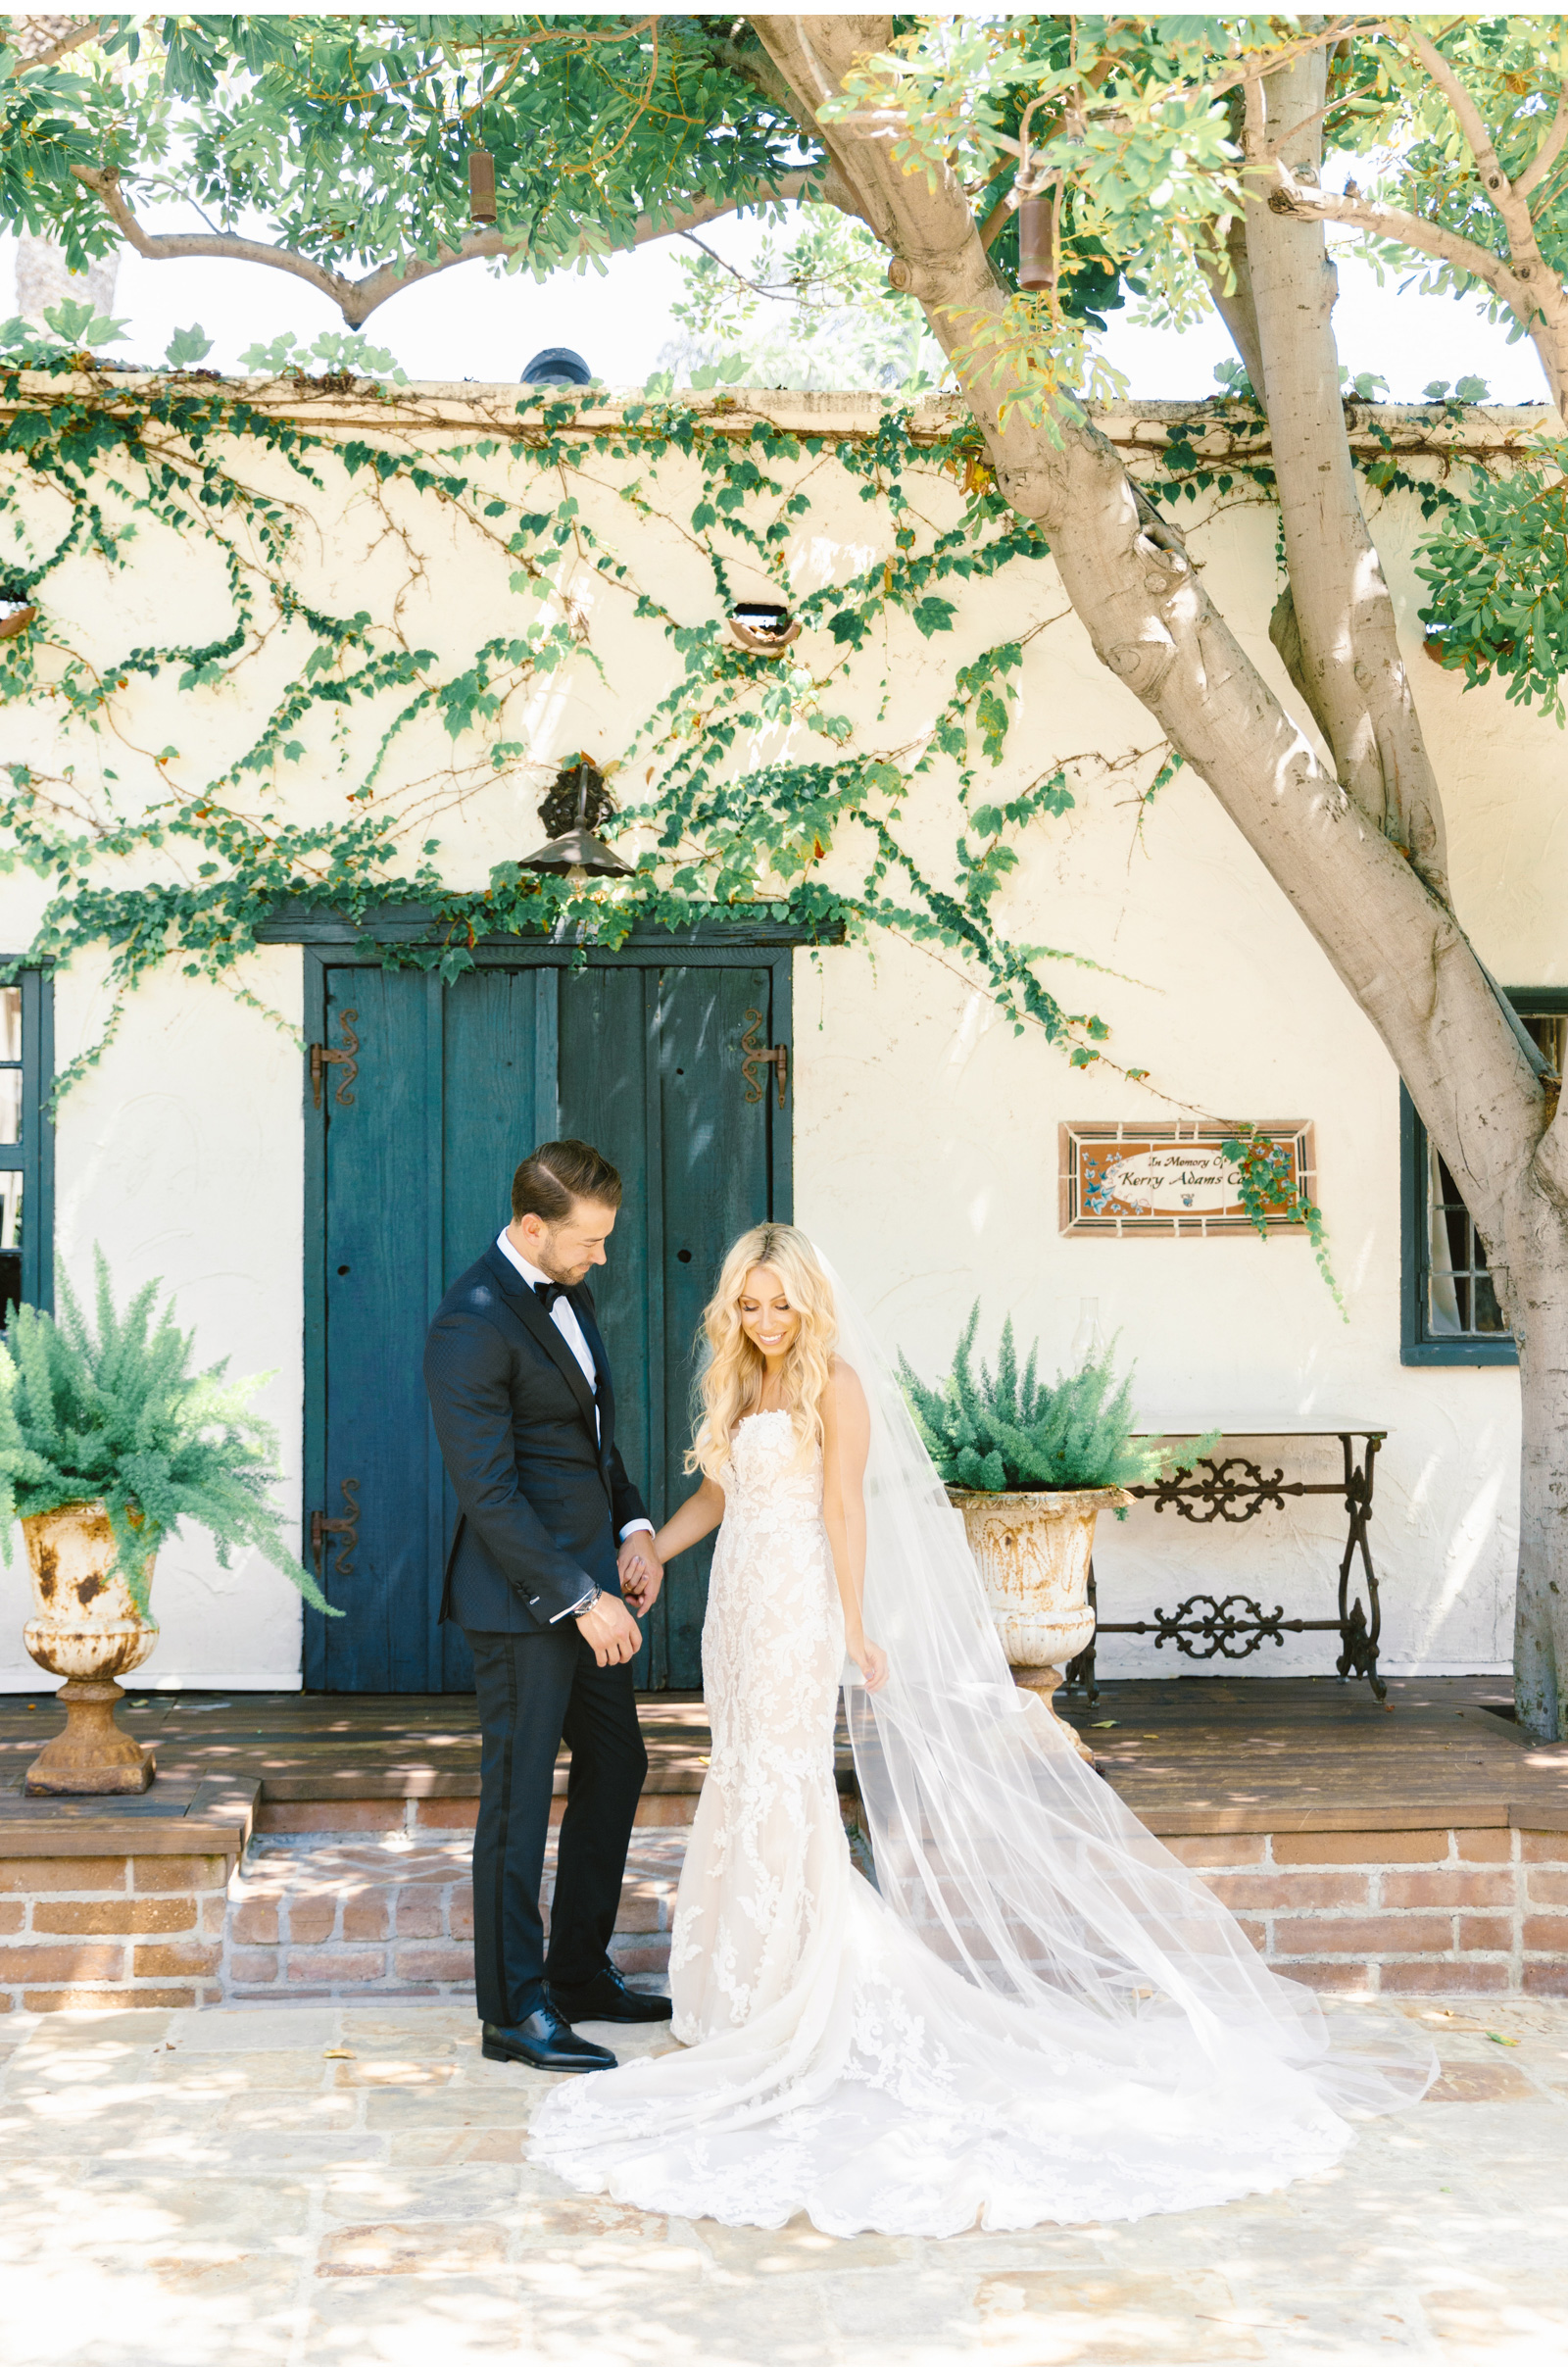 San-Juan-Capistrano-Wedding-Photographer-Malibu-Weddings-Malibu-Wedding-Venues-Natalie-Schutt-Photographer_11.jpg